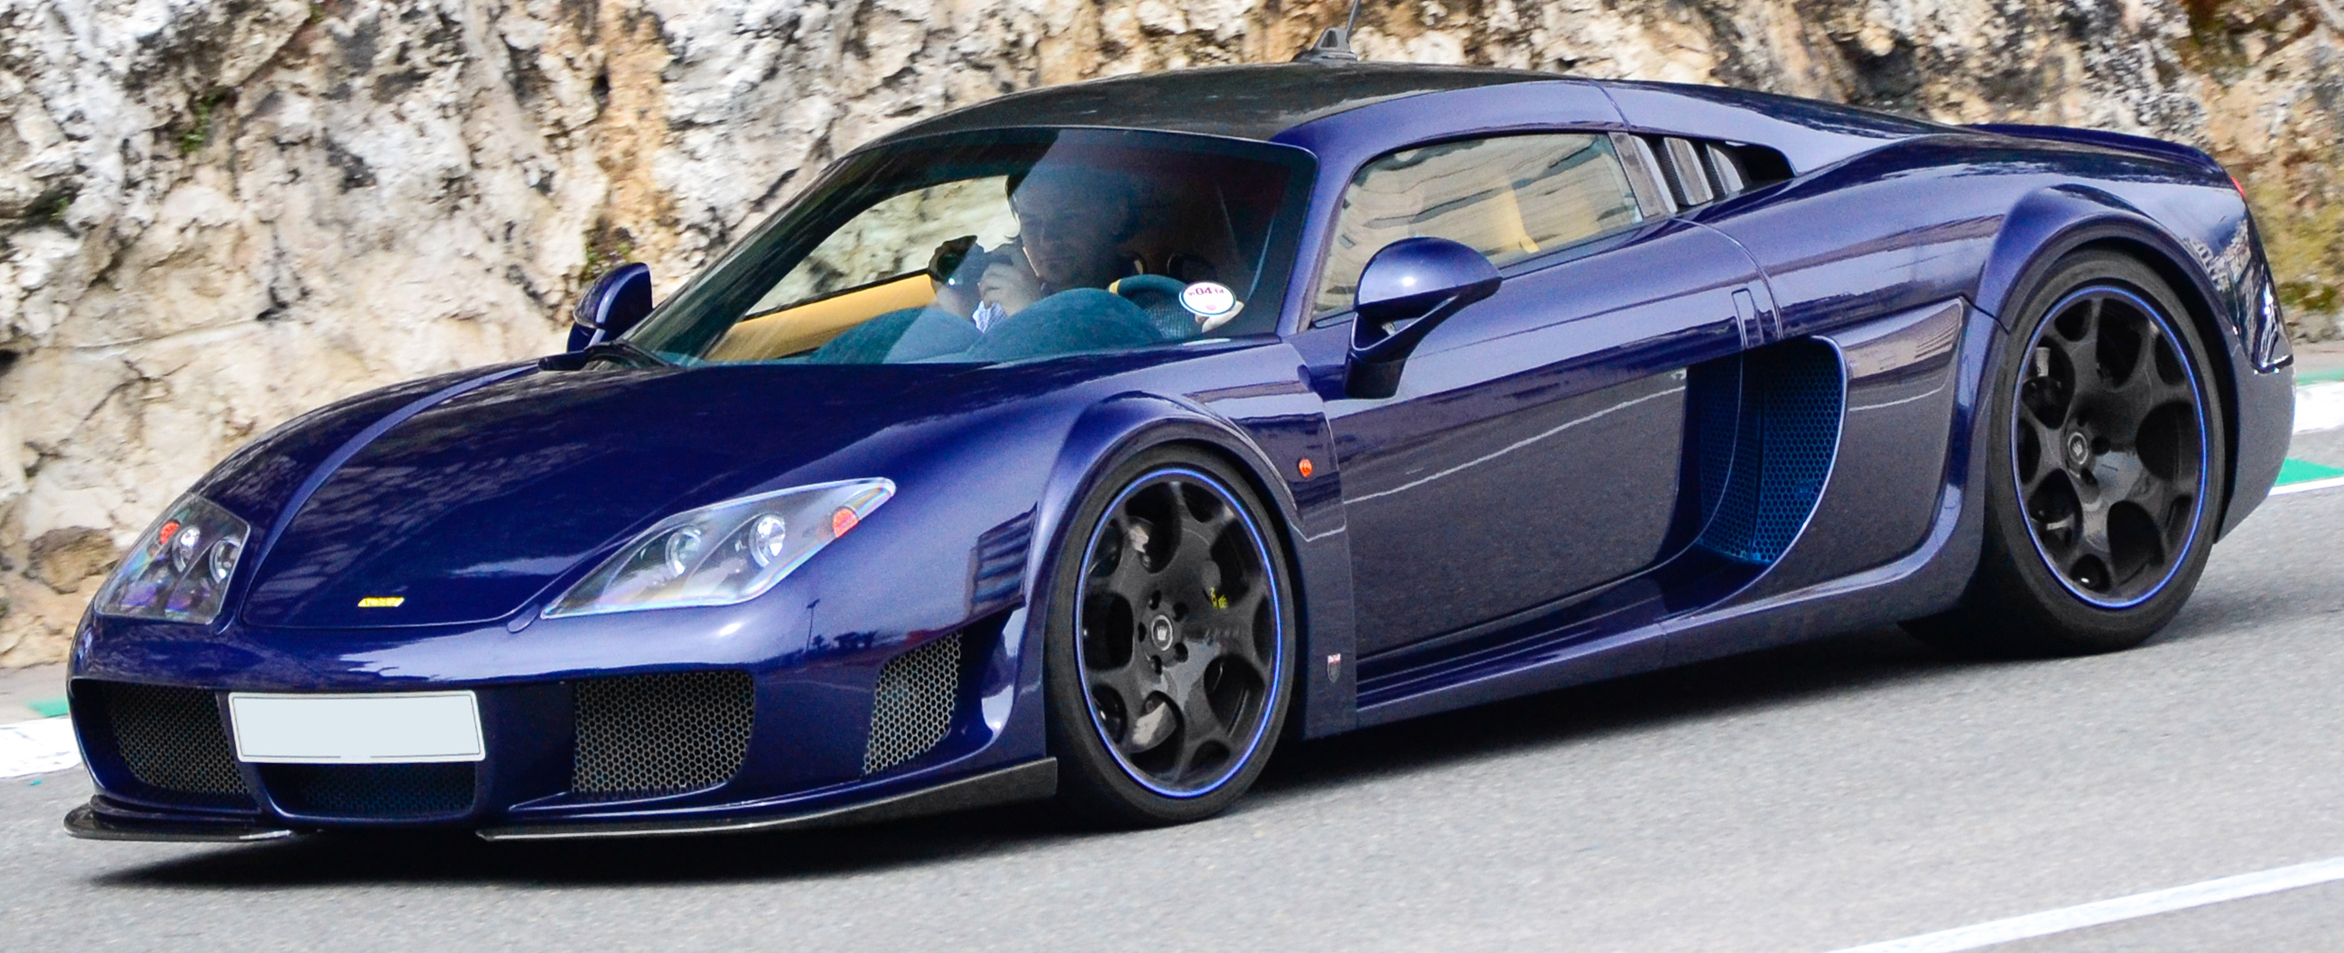 Noble M600 Carbon Sport (8727178385) (cropped).jpg